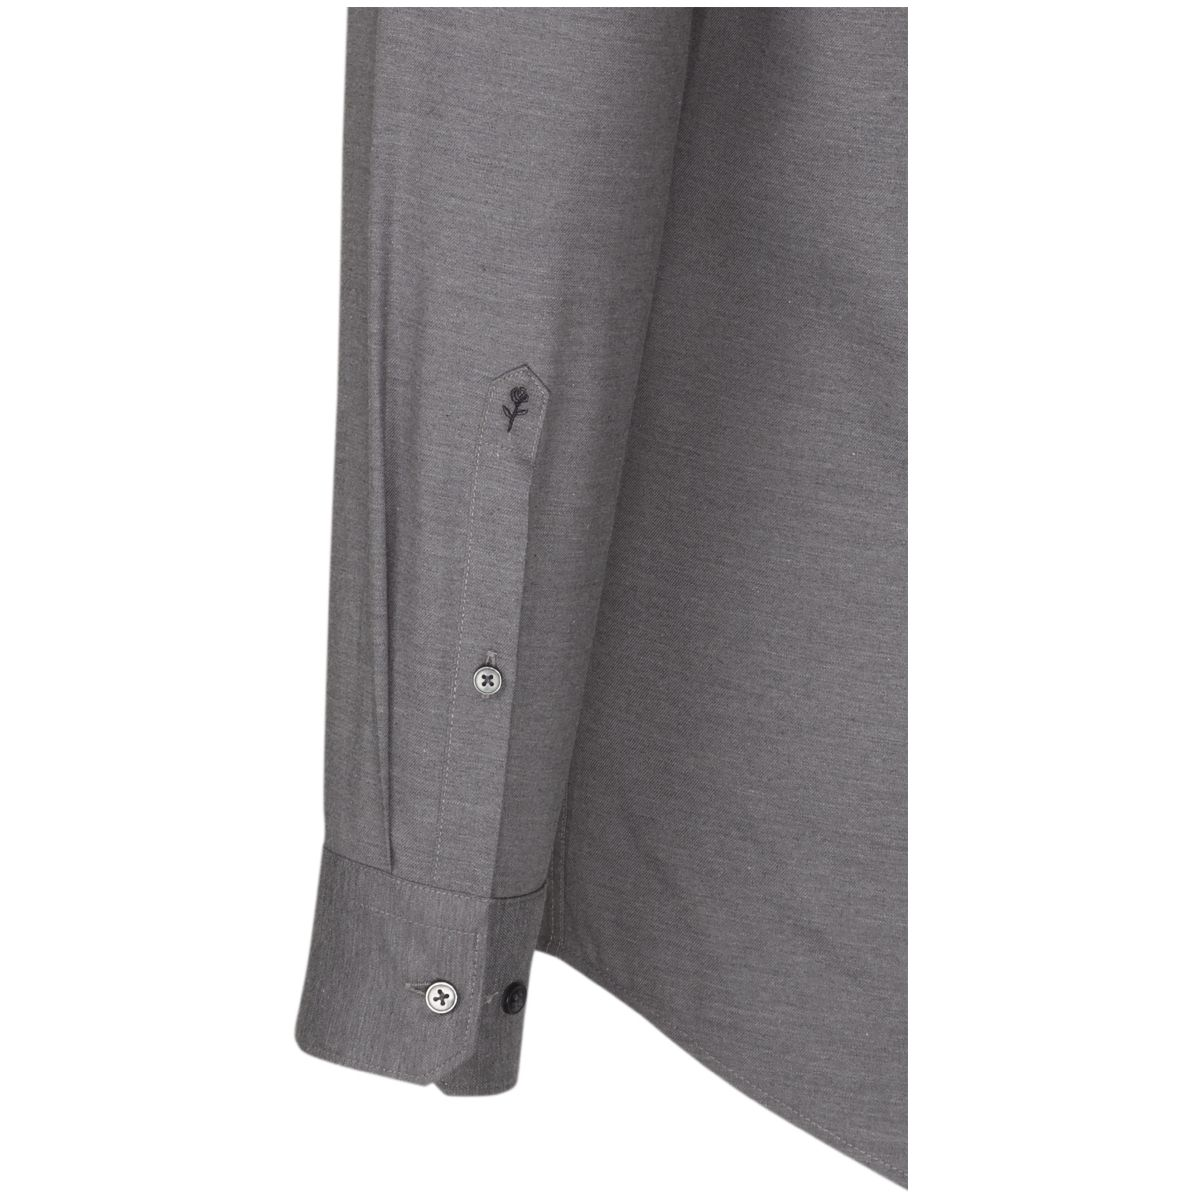 Chemise droite Printed twill gris perle